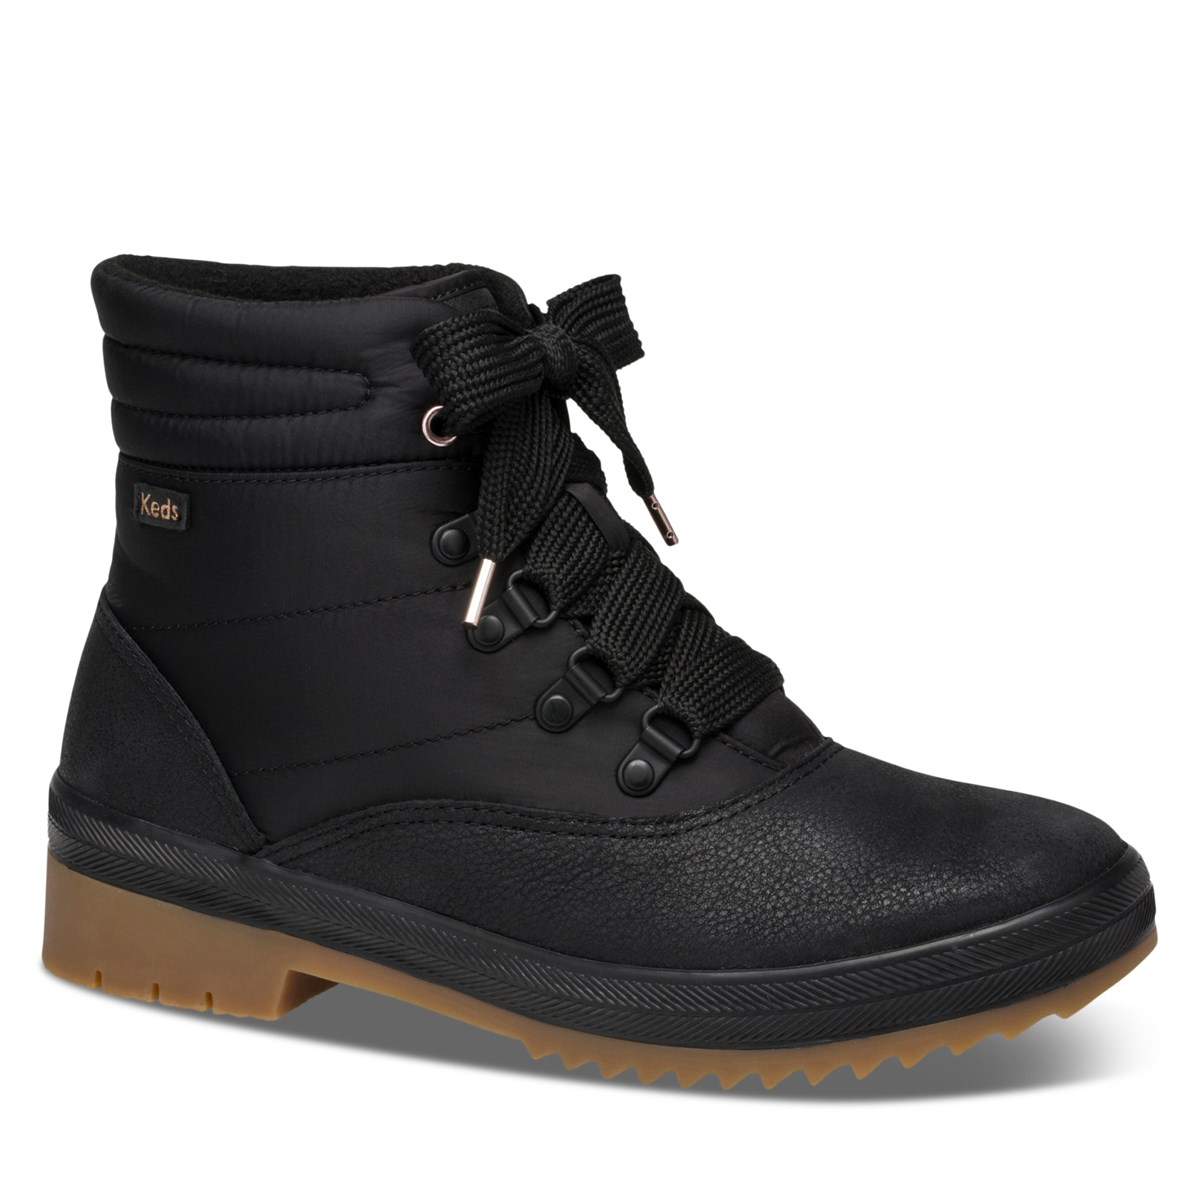 Women's Camp Waterproof Boots in Black